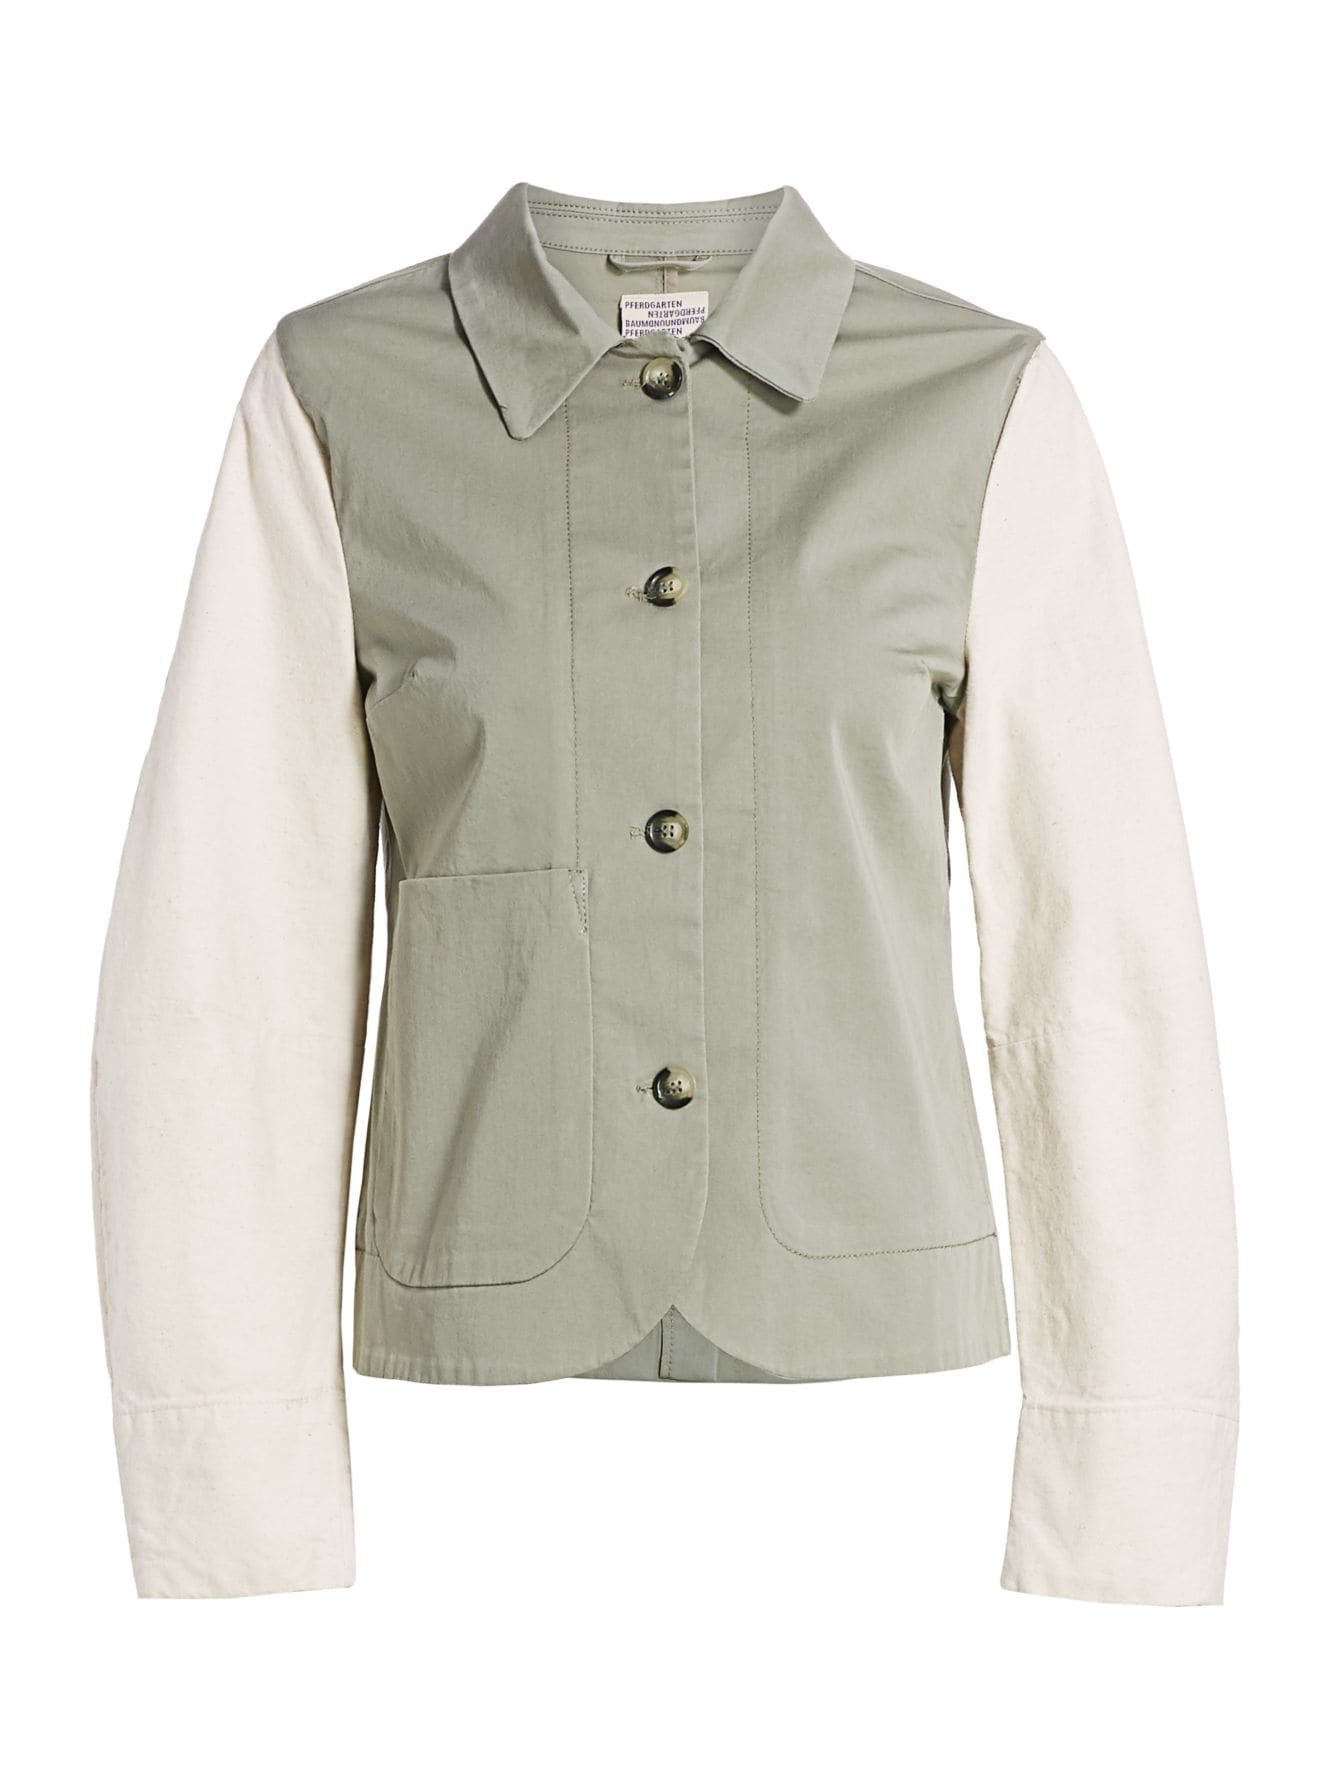 Dance Bex Two-Tone Jacket